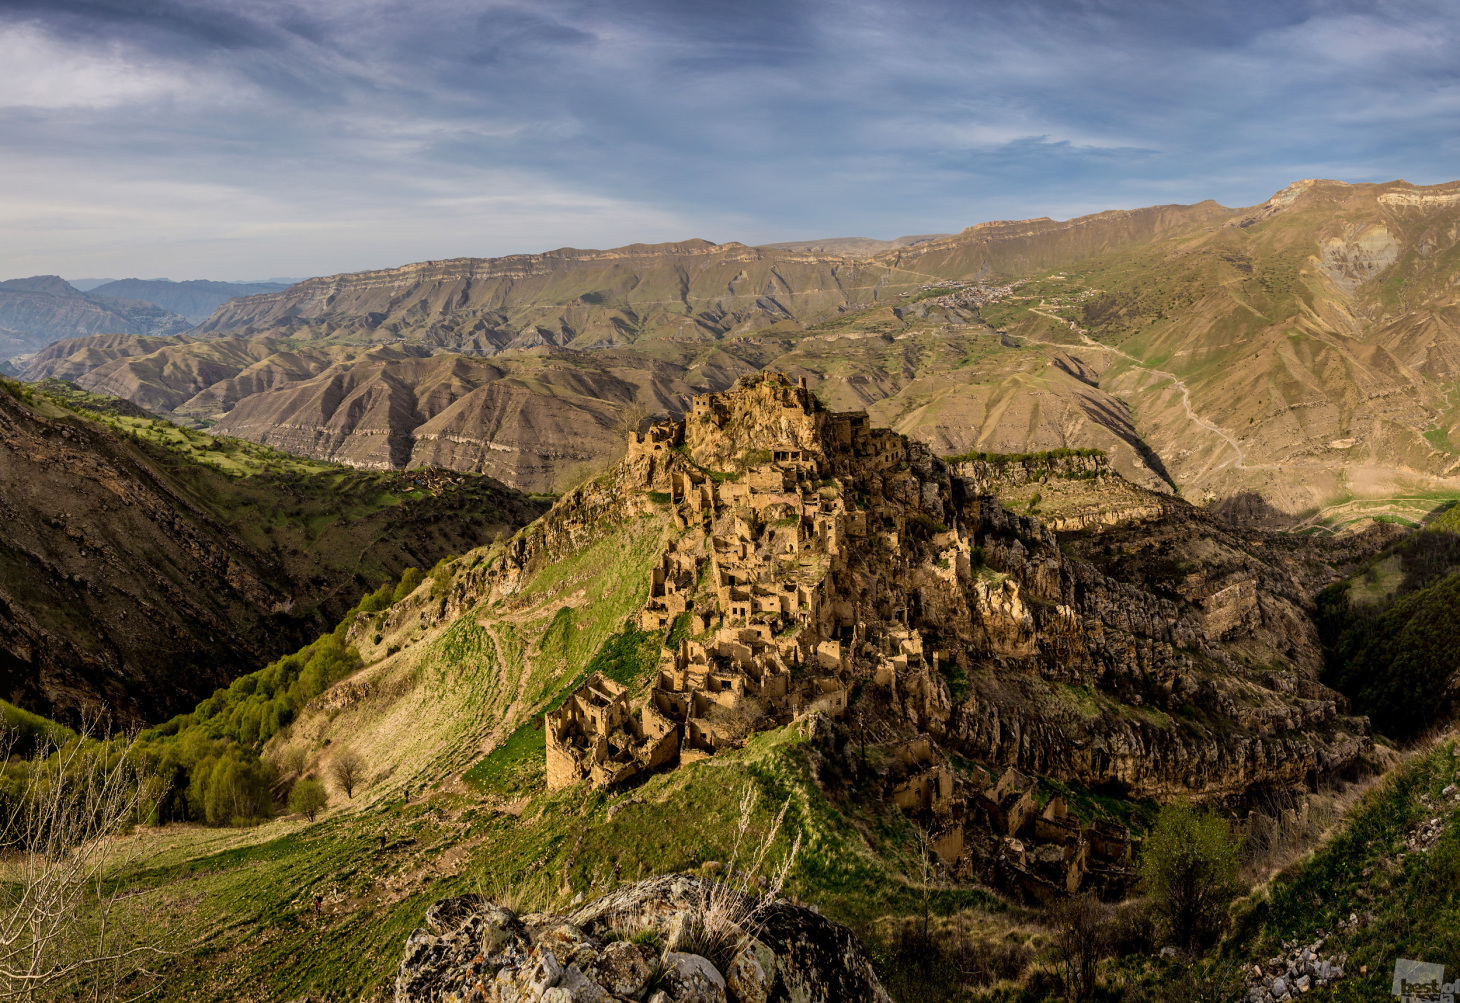 The ghost village of Gamsutl is an abandoned ancient Avar settlement in Dagestan, North Caucasus. The village, which is carved in rock atop a 4600-feet high mountain, is barely noticeable these days.